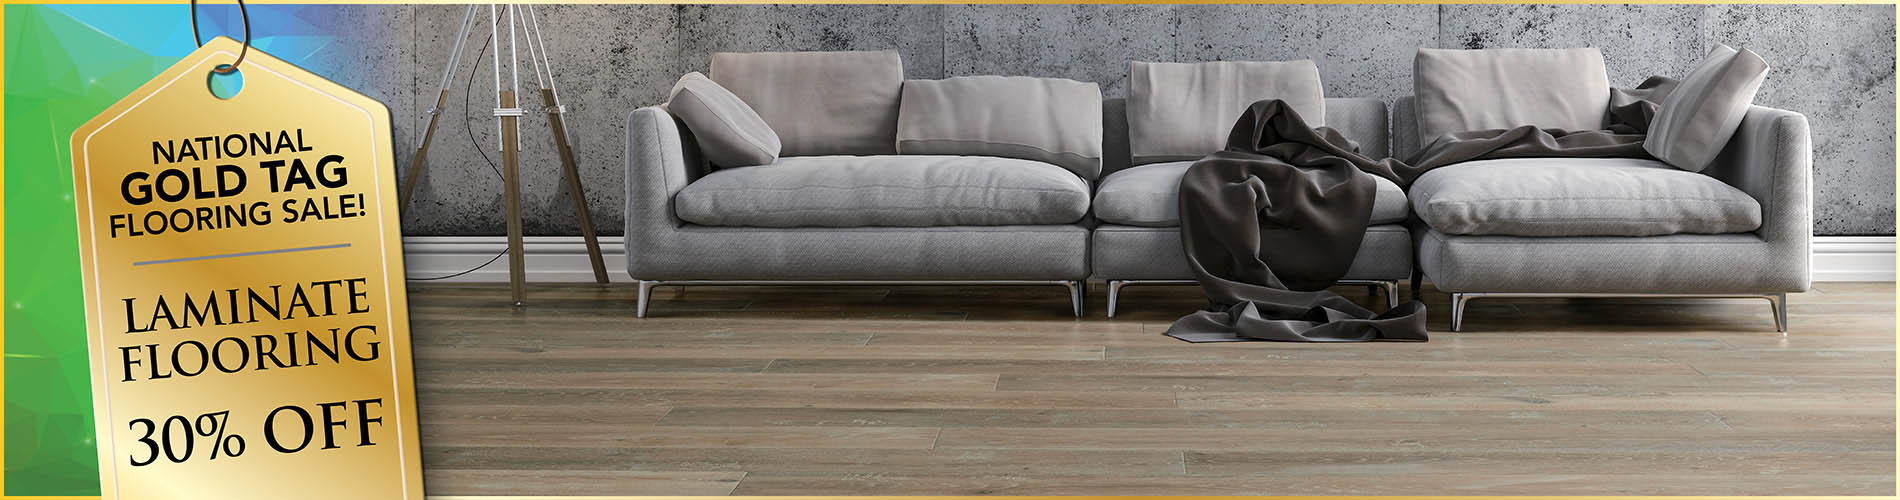 Laminate flooring on sale 30% off!